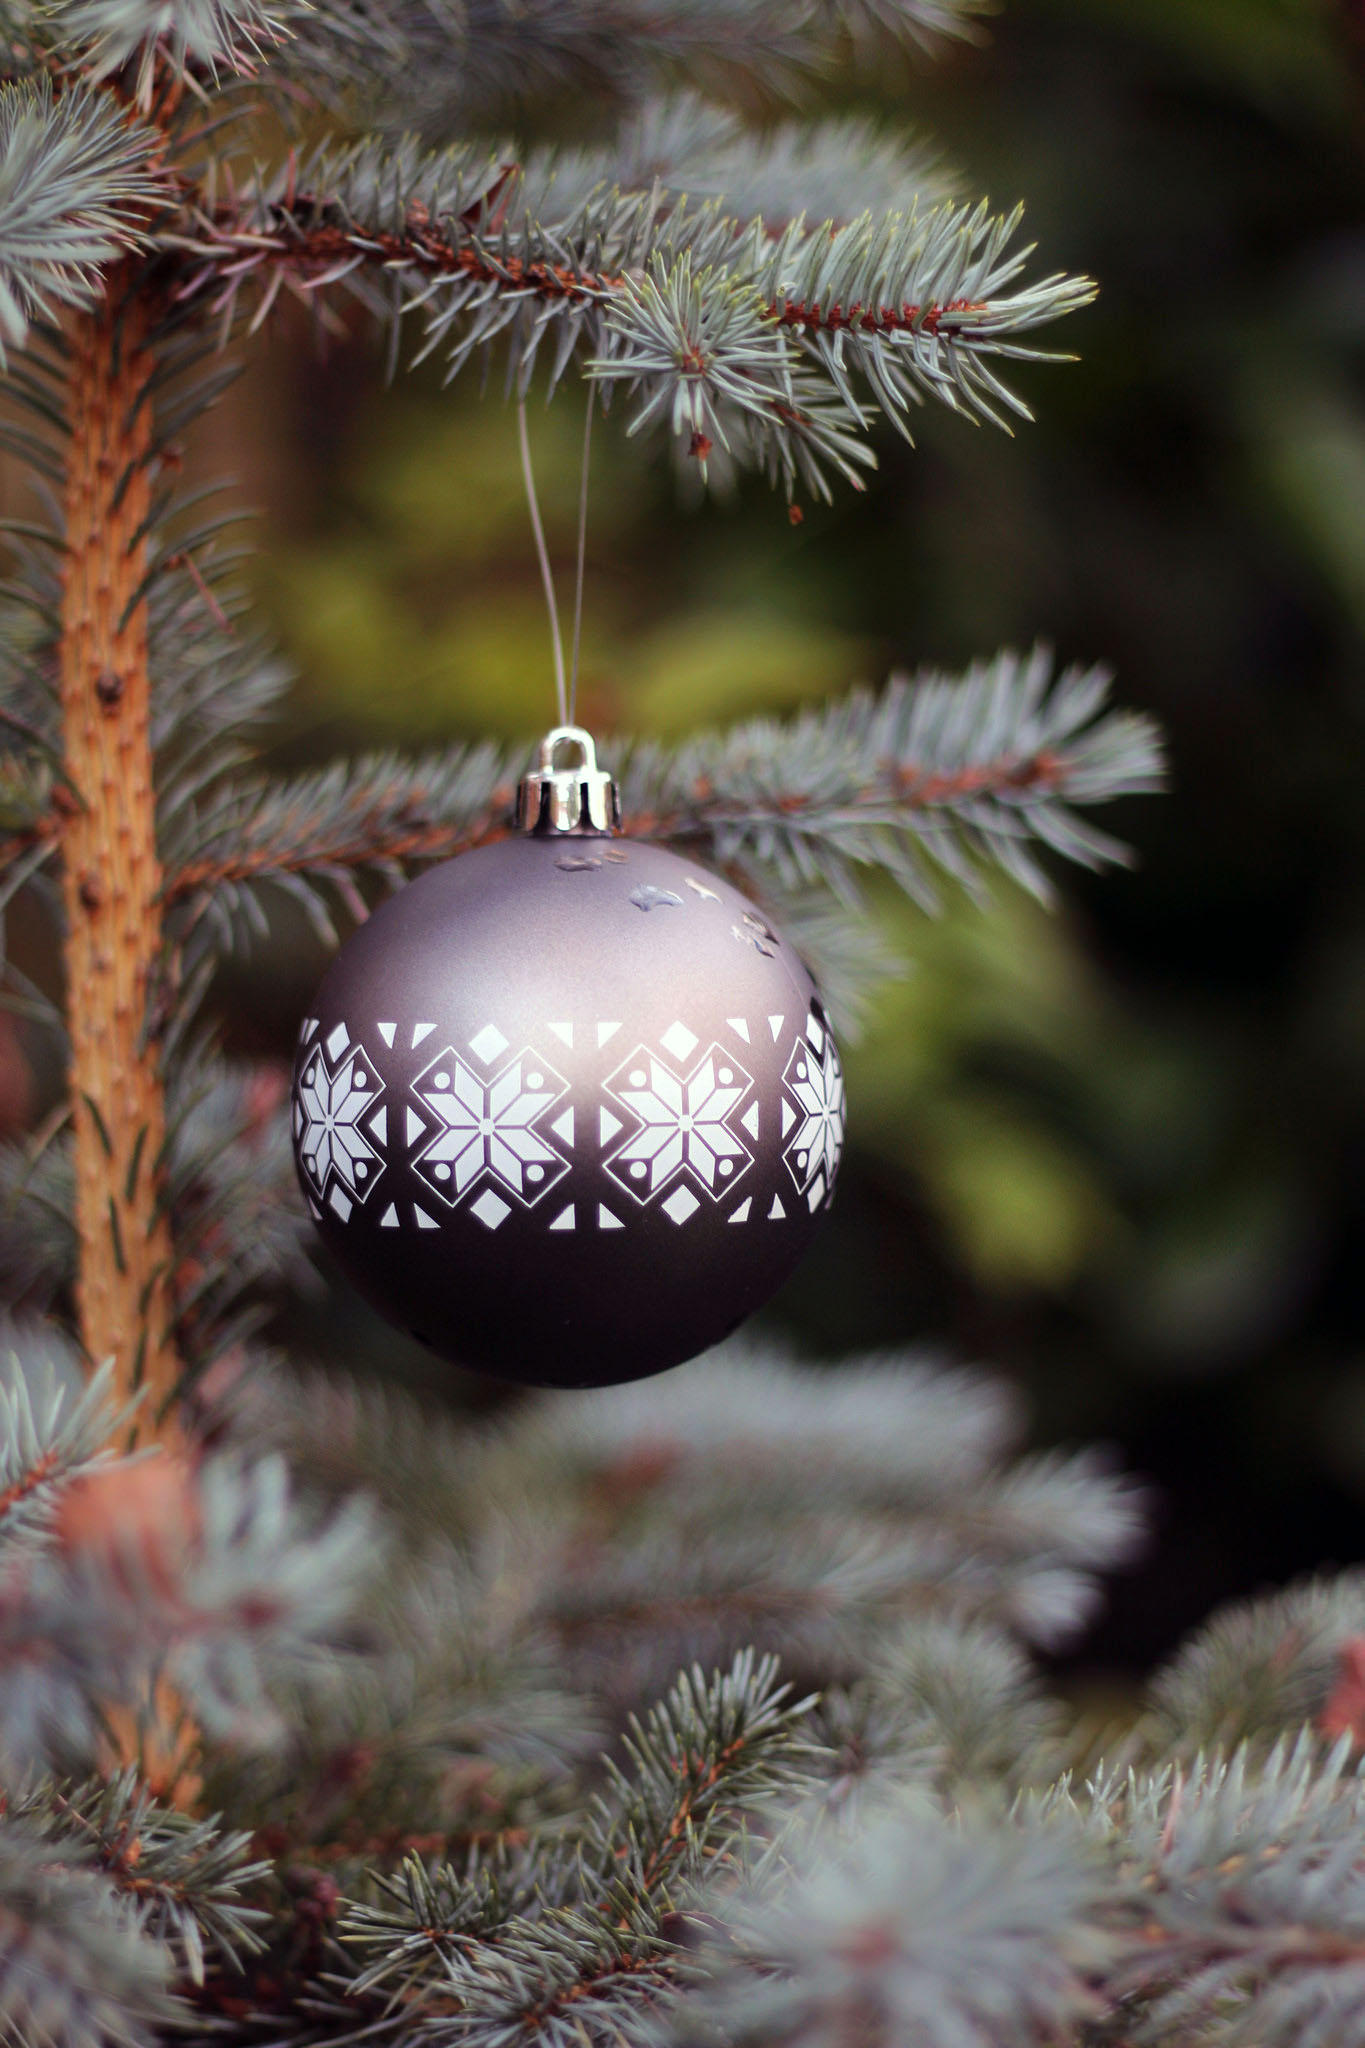 Christmas Tree Ornament Outdoors